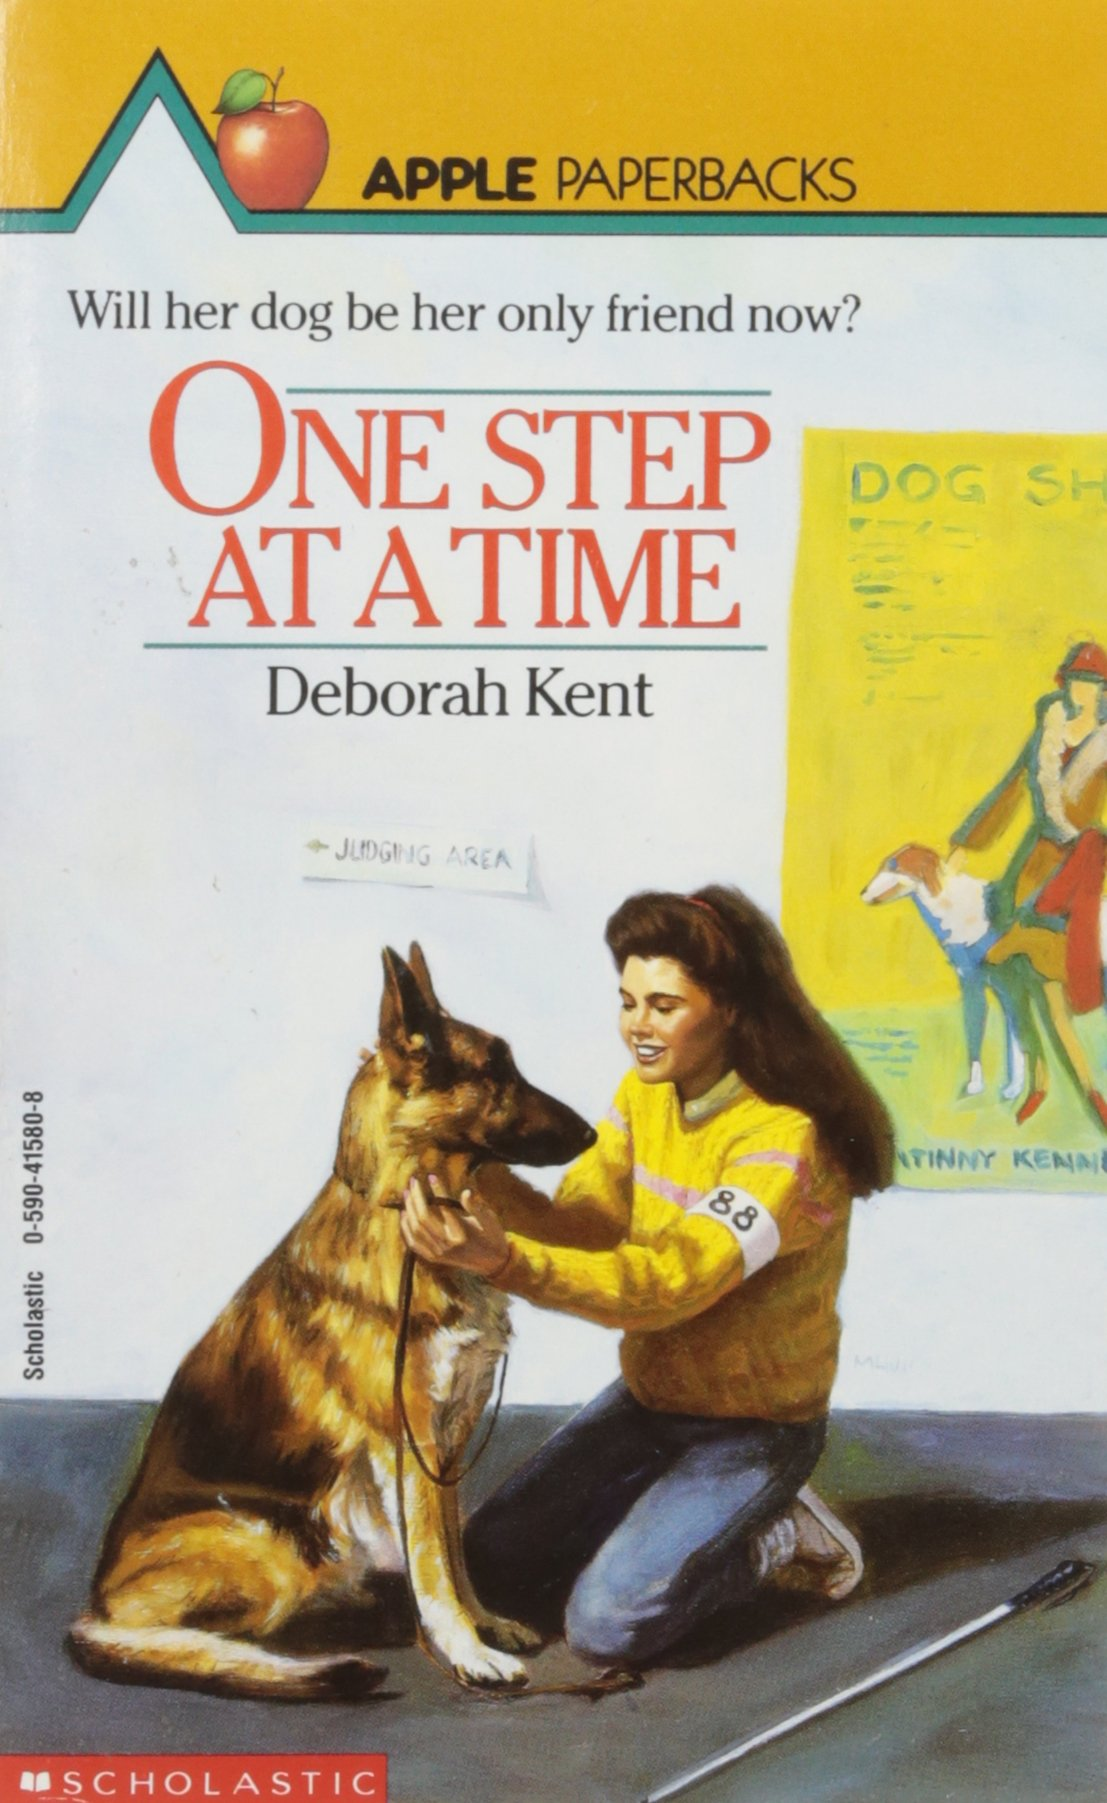 Image result for one step at a time by deborah kent